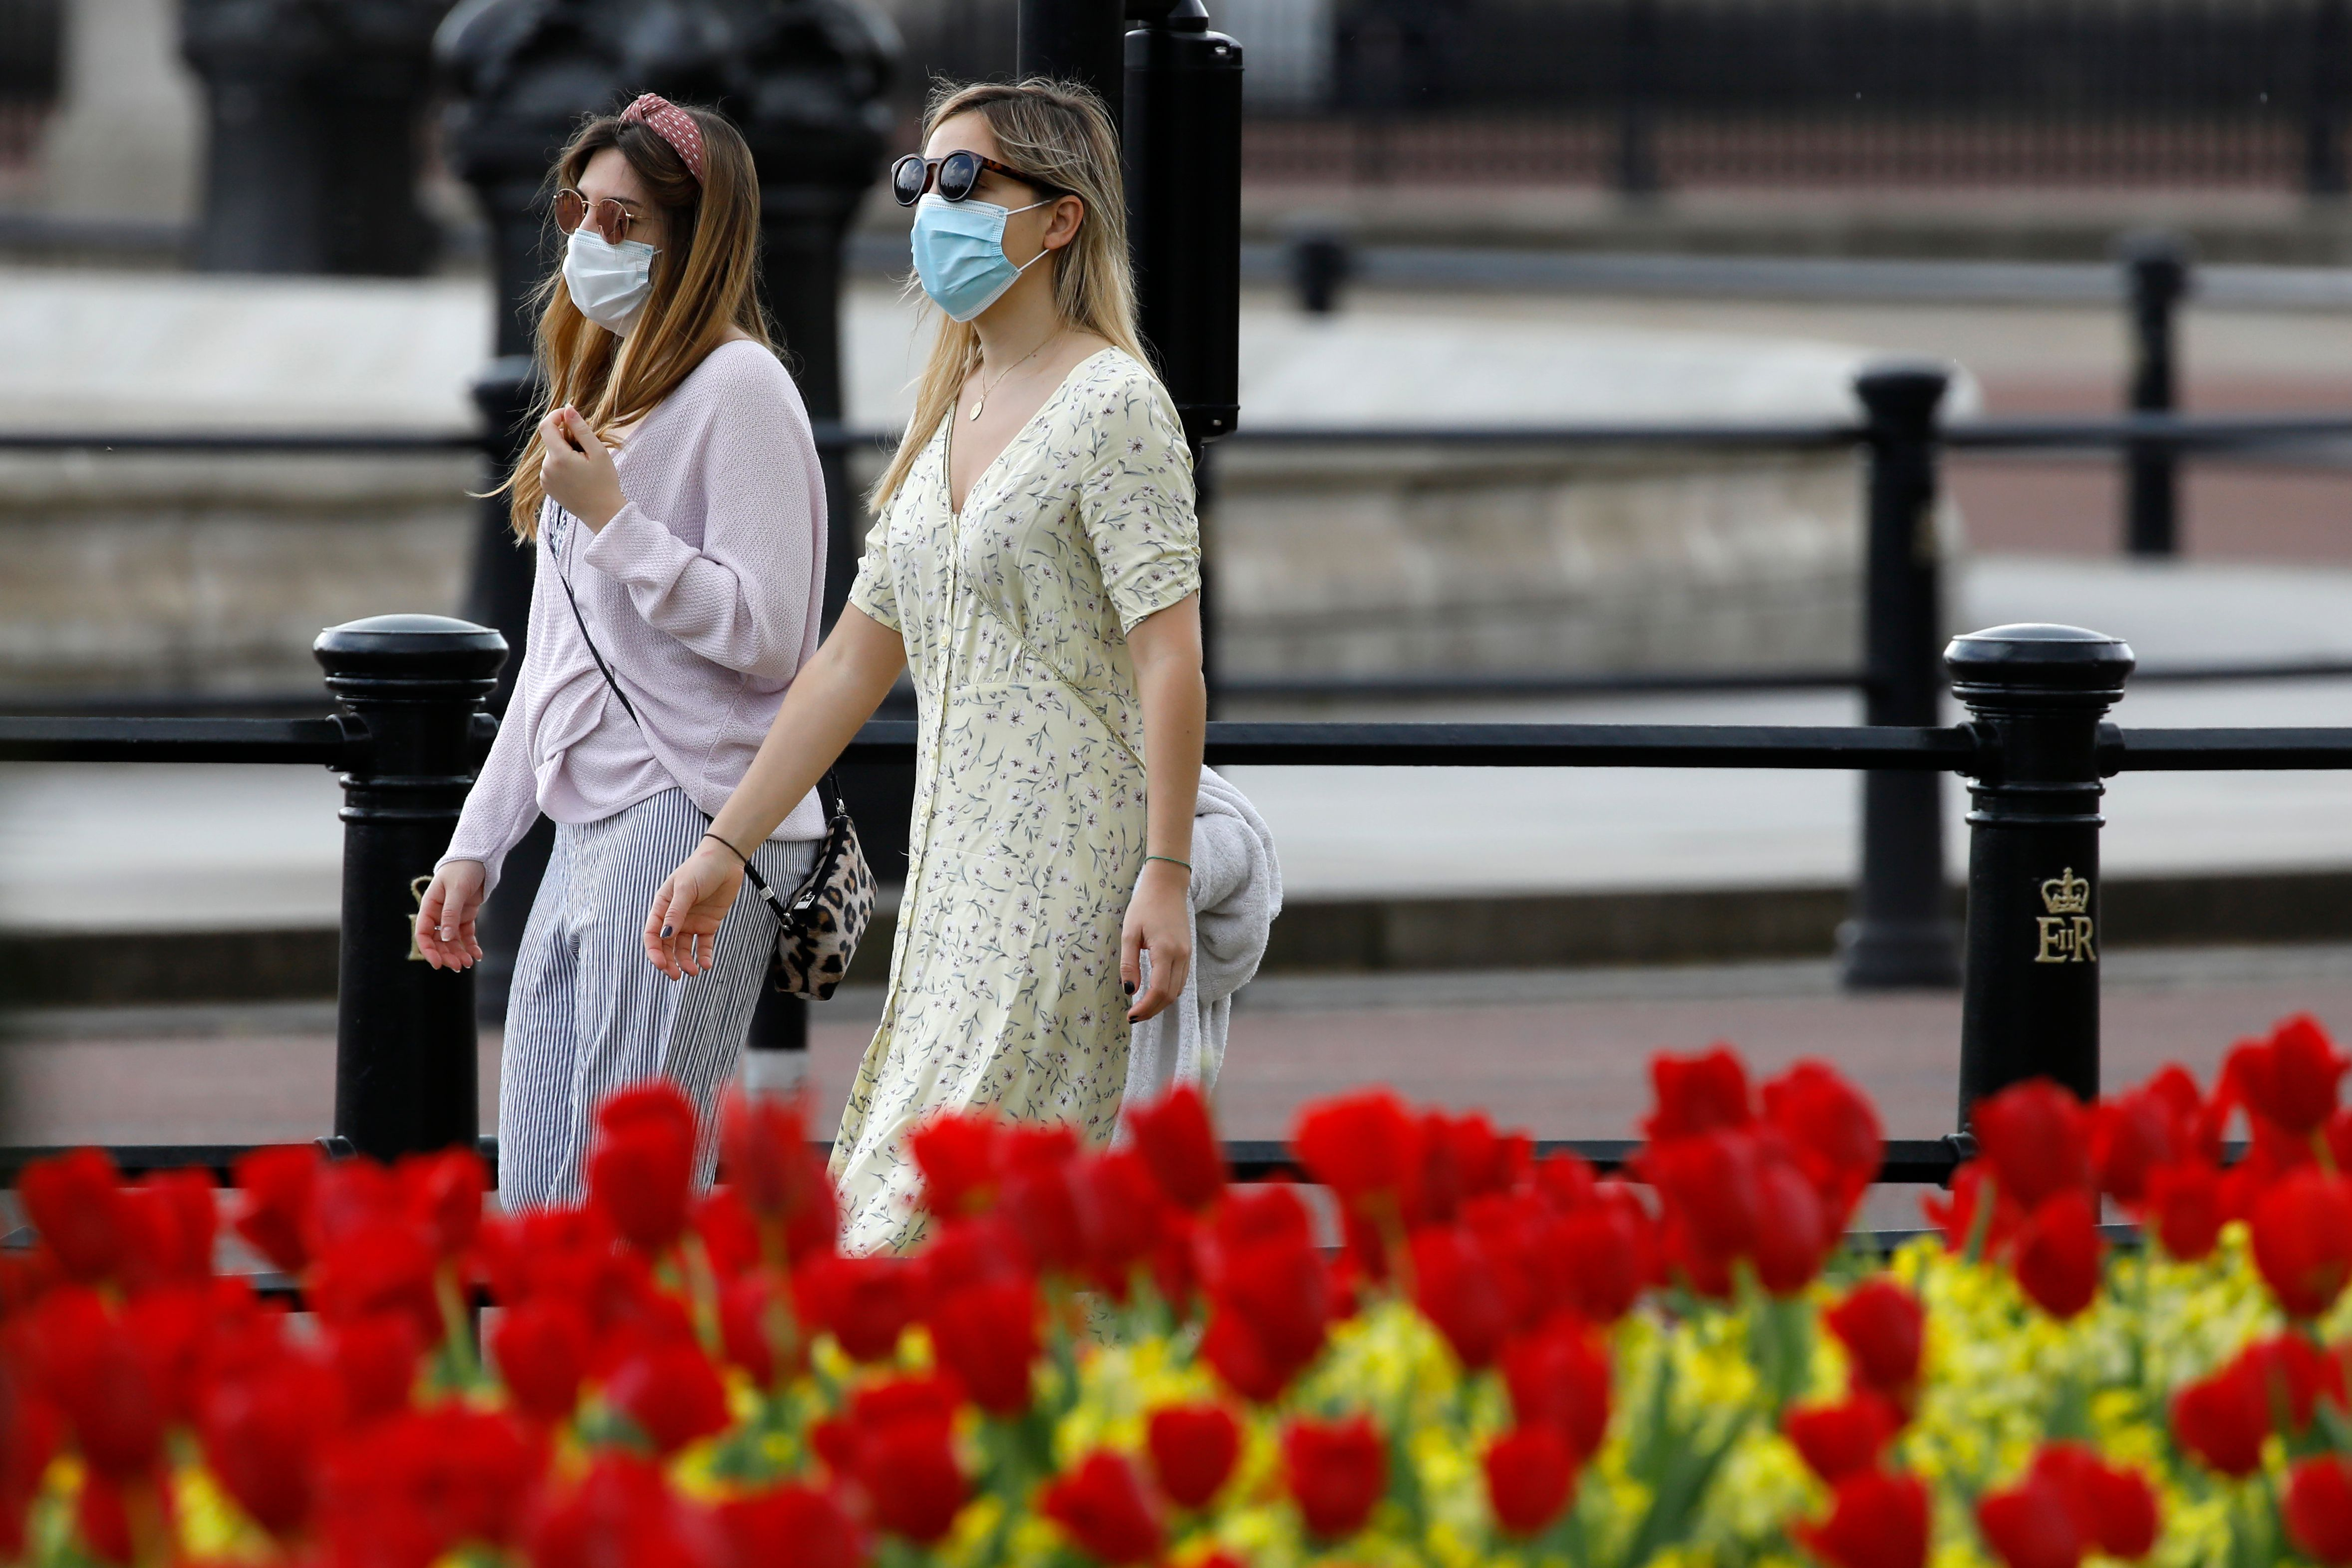 Two women wear protective face masks as they walk past the flowers outside Buckingham Palace in London on April 12, 2020, during the nationwide lockdown to combat the novel coronavirus pandemic. - The Prime Minister left hospital on Sunday to convalesce from coronavirus at Chequers, the country estate of British prime ministers, officials said, a week after he was admitted and then spent three days in intensive care. (Photo by Tolga AKMEN / AFP) (Photo by TOLGA AKMEN/AFP via Getty Images)